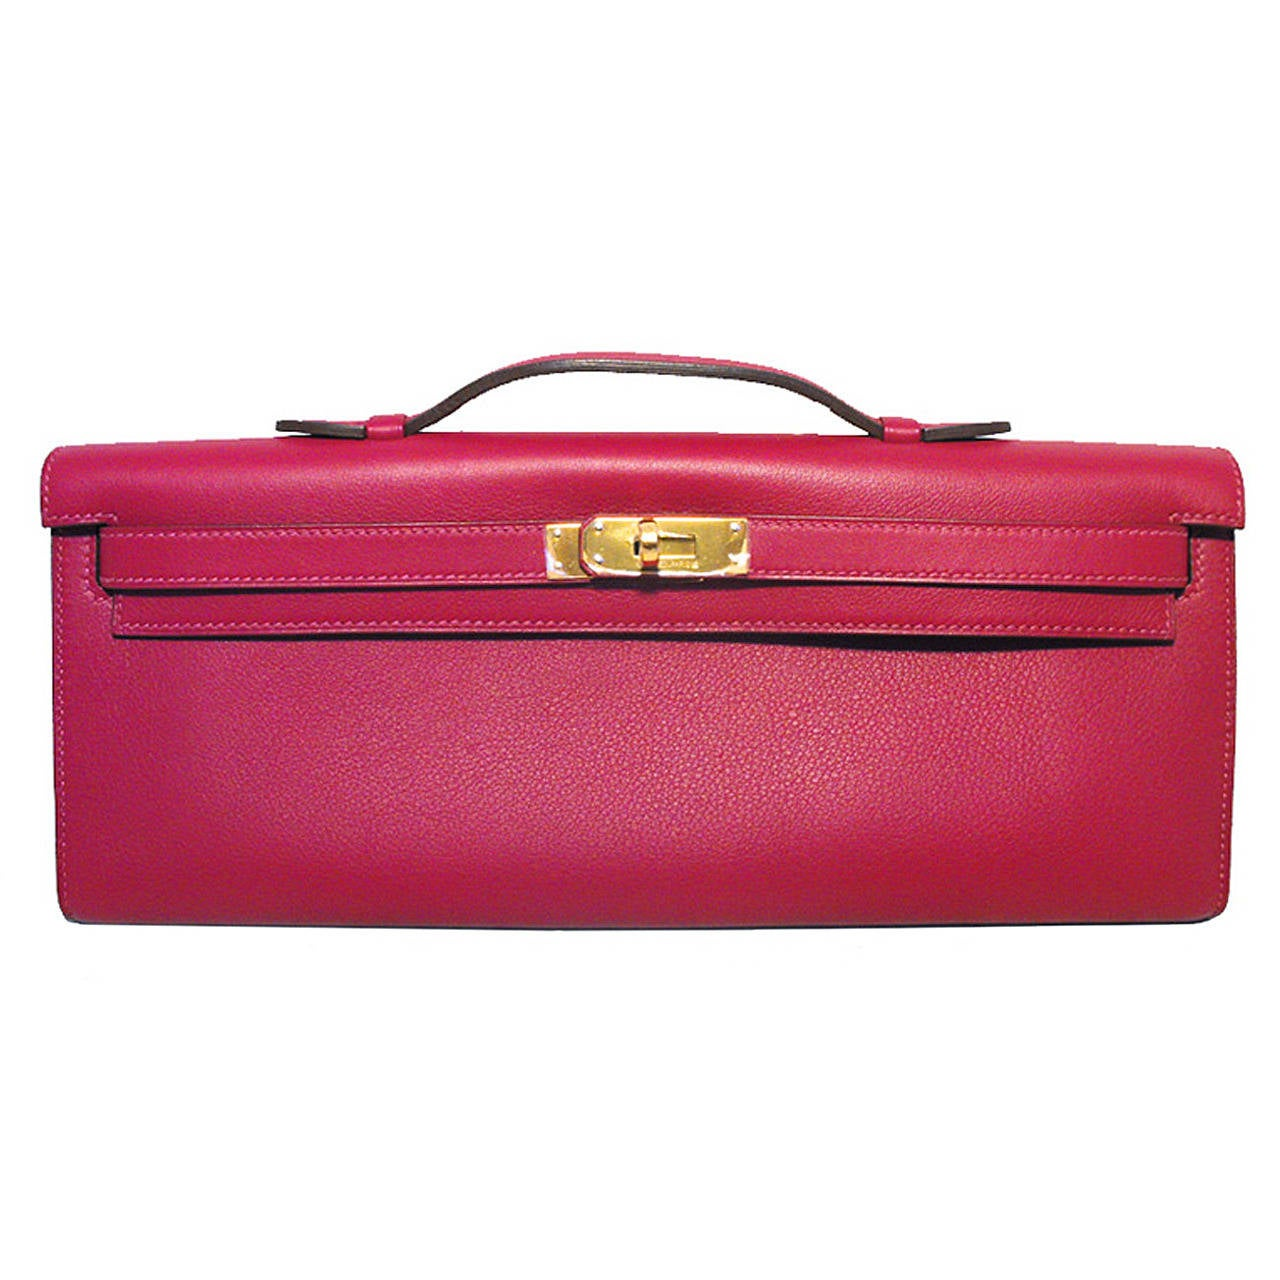 Hermes Fuchsia Swift Leather Kelly Cut Clutch Handbag